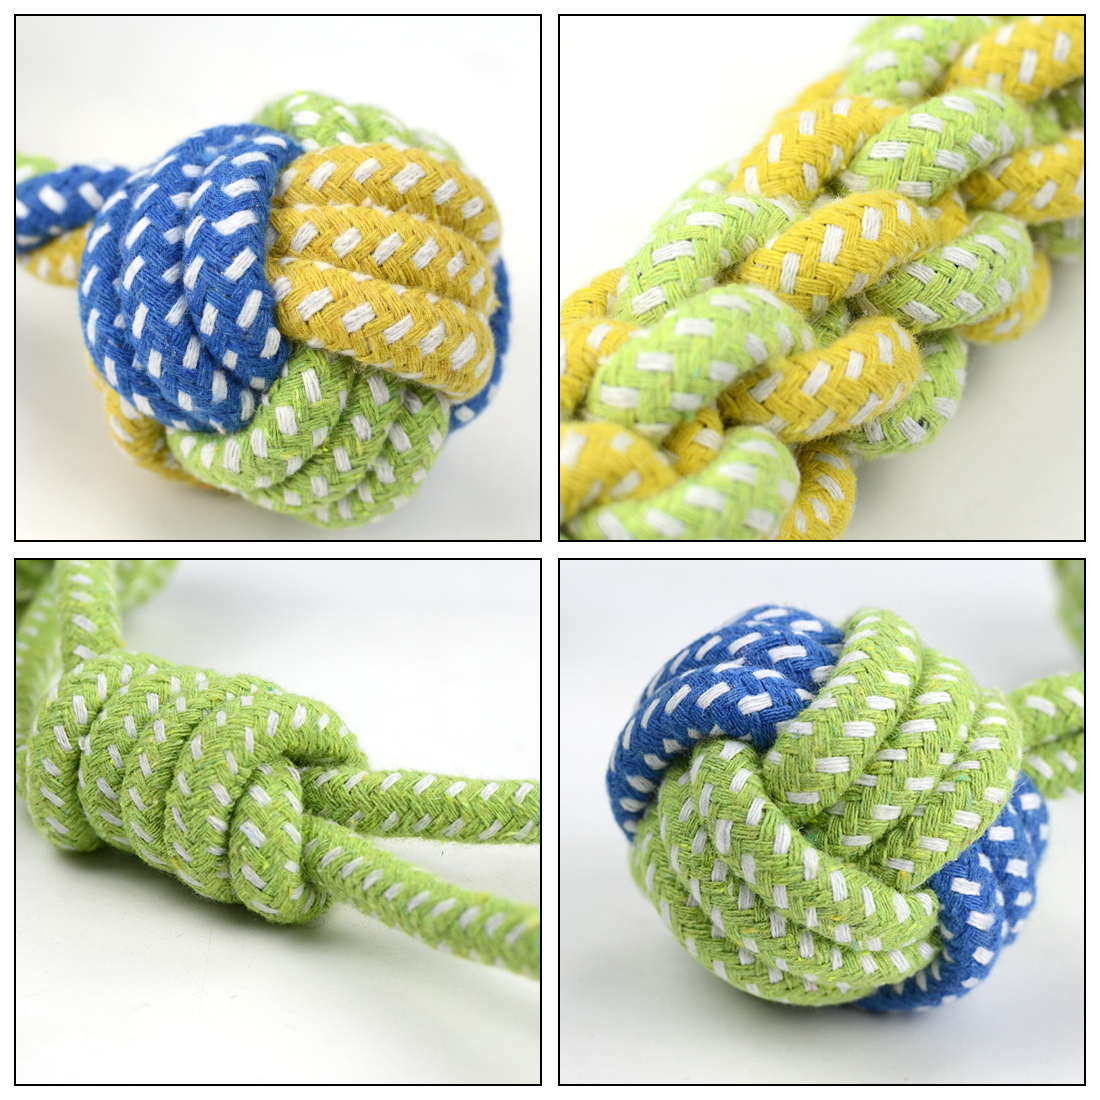 Pet Dog Cotton Rope Toy Dog 7 Pcs Chew Toys Honden Speelgoed Interactive Dogs Toys Tooth Cleaning Dog Love Throwing Bite Toys 2